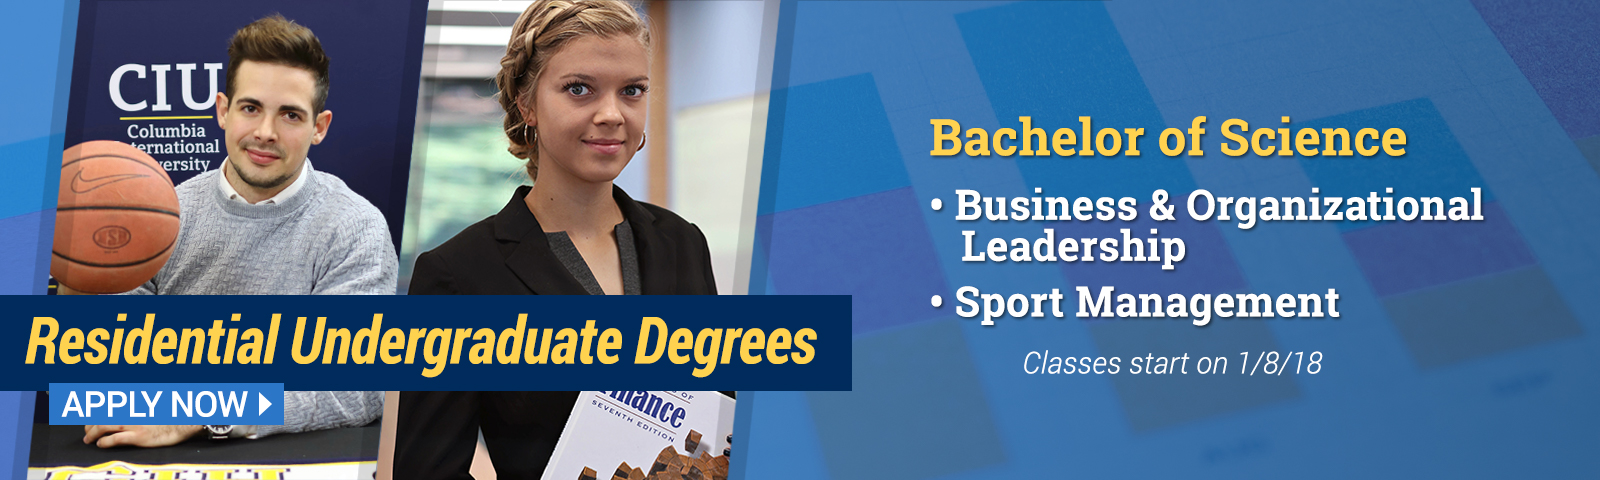 Earn a Bachelor of Science in Sport Management or Business Organizational Leadership.